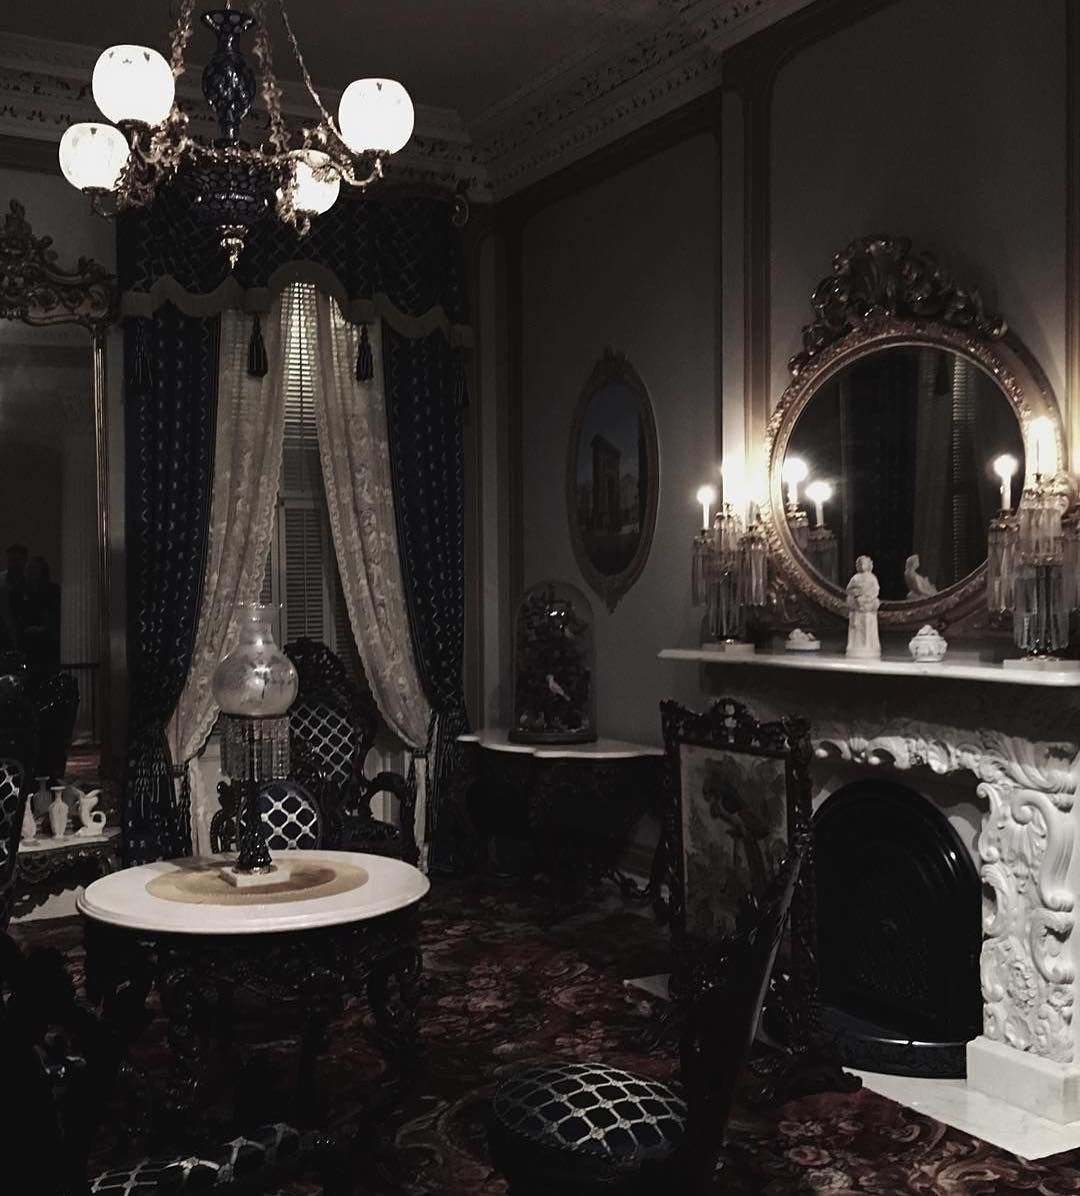 Oh Wow I Love This Fireplace Goth Gothic Gothique Gothhome Gothichome Home Baroque Baroc Ba Gothic Interior Gothic Home Decor Gothic House